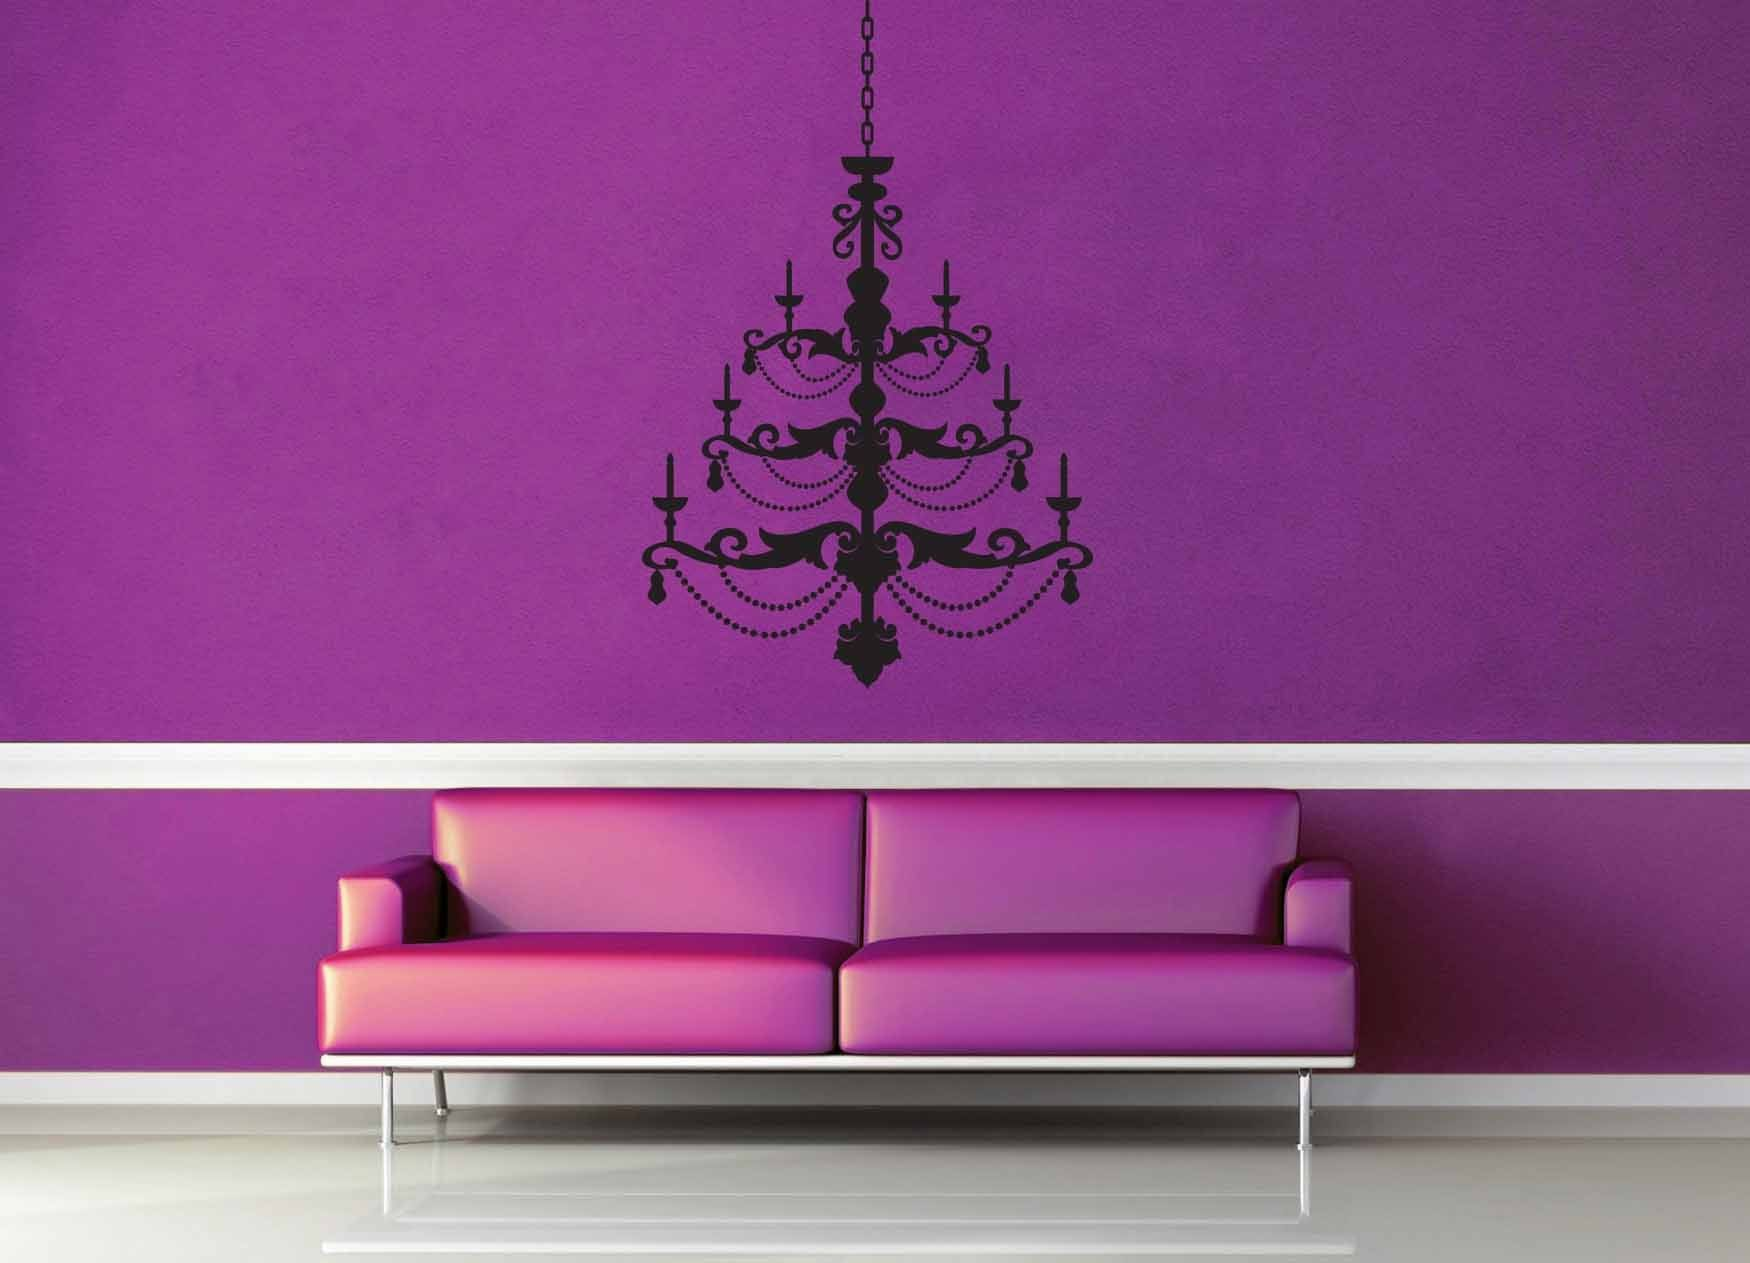 Chandelier - Wall Decal - No 1